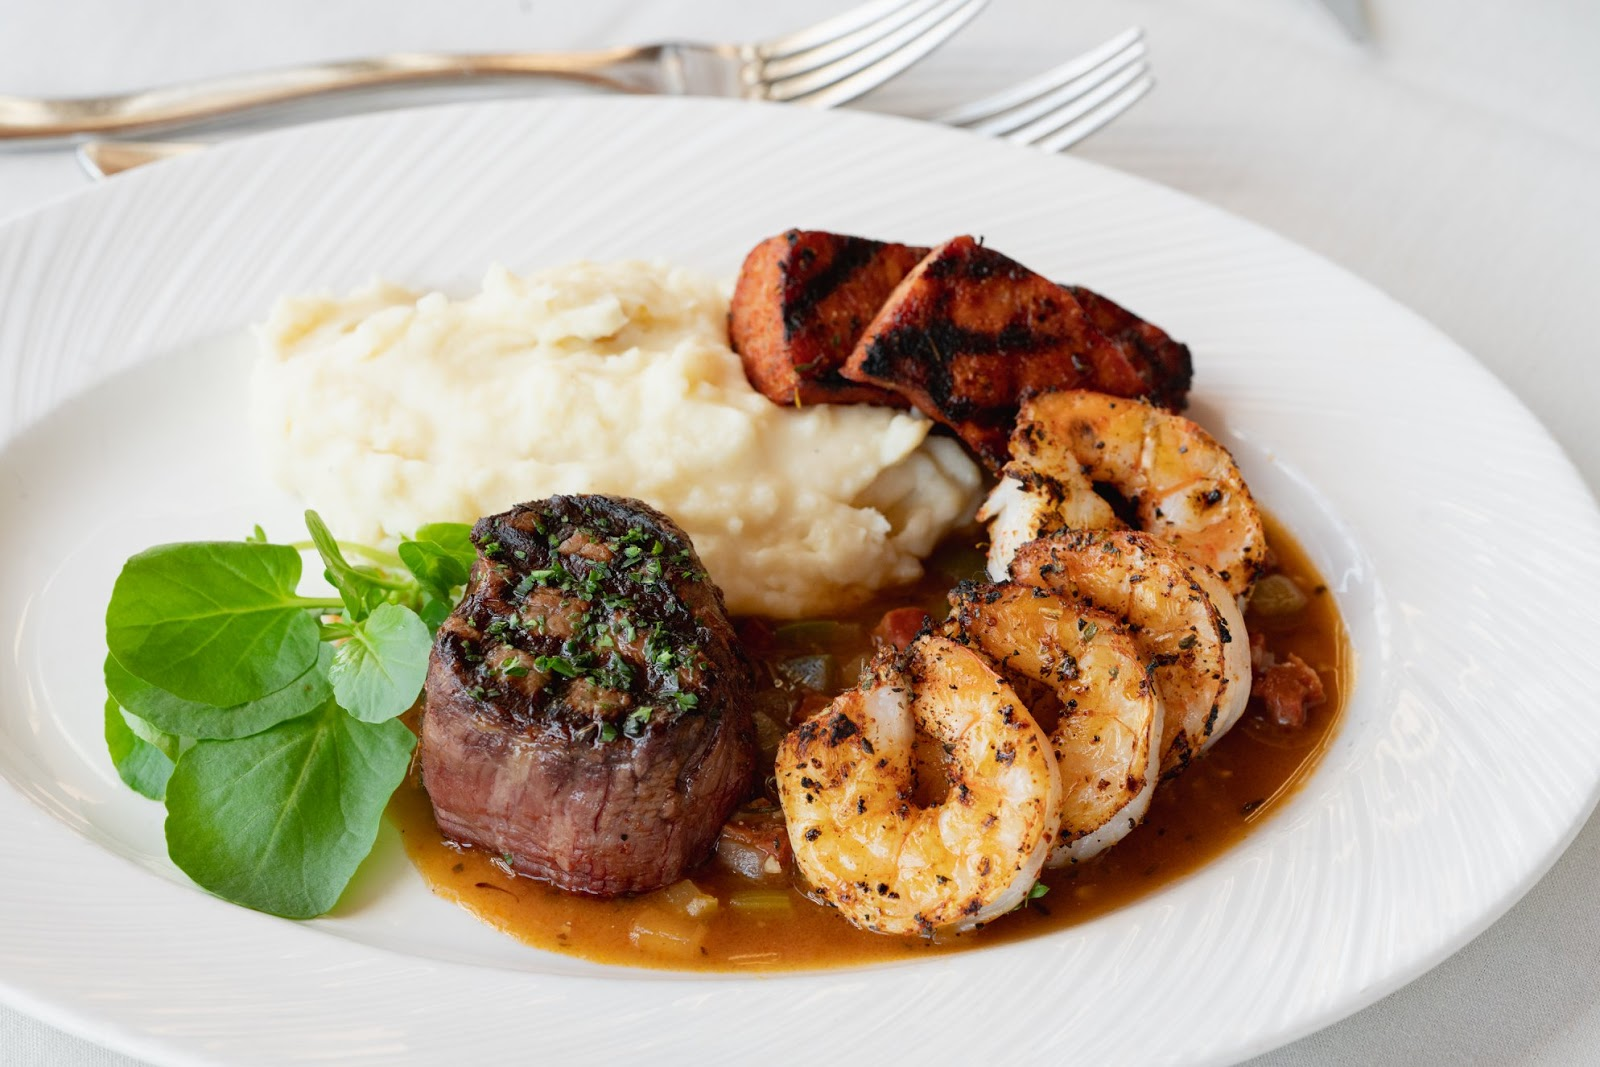 One of Eddie Merlot's featured dishes with steak, shrimp and mashed potatoes